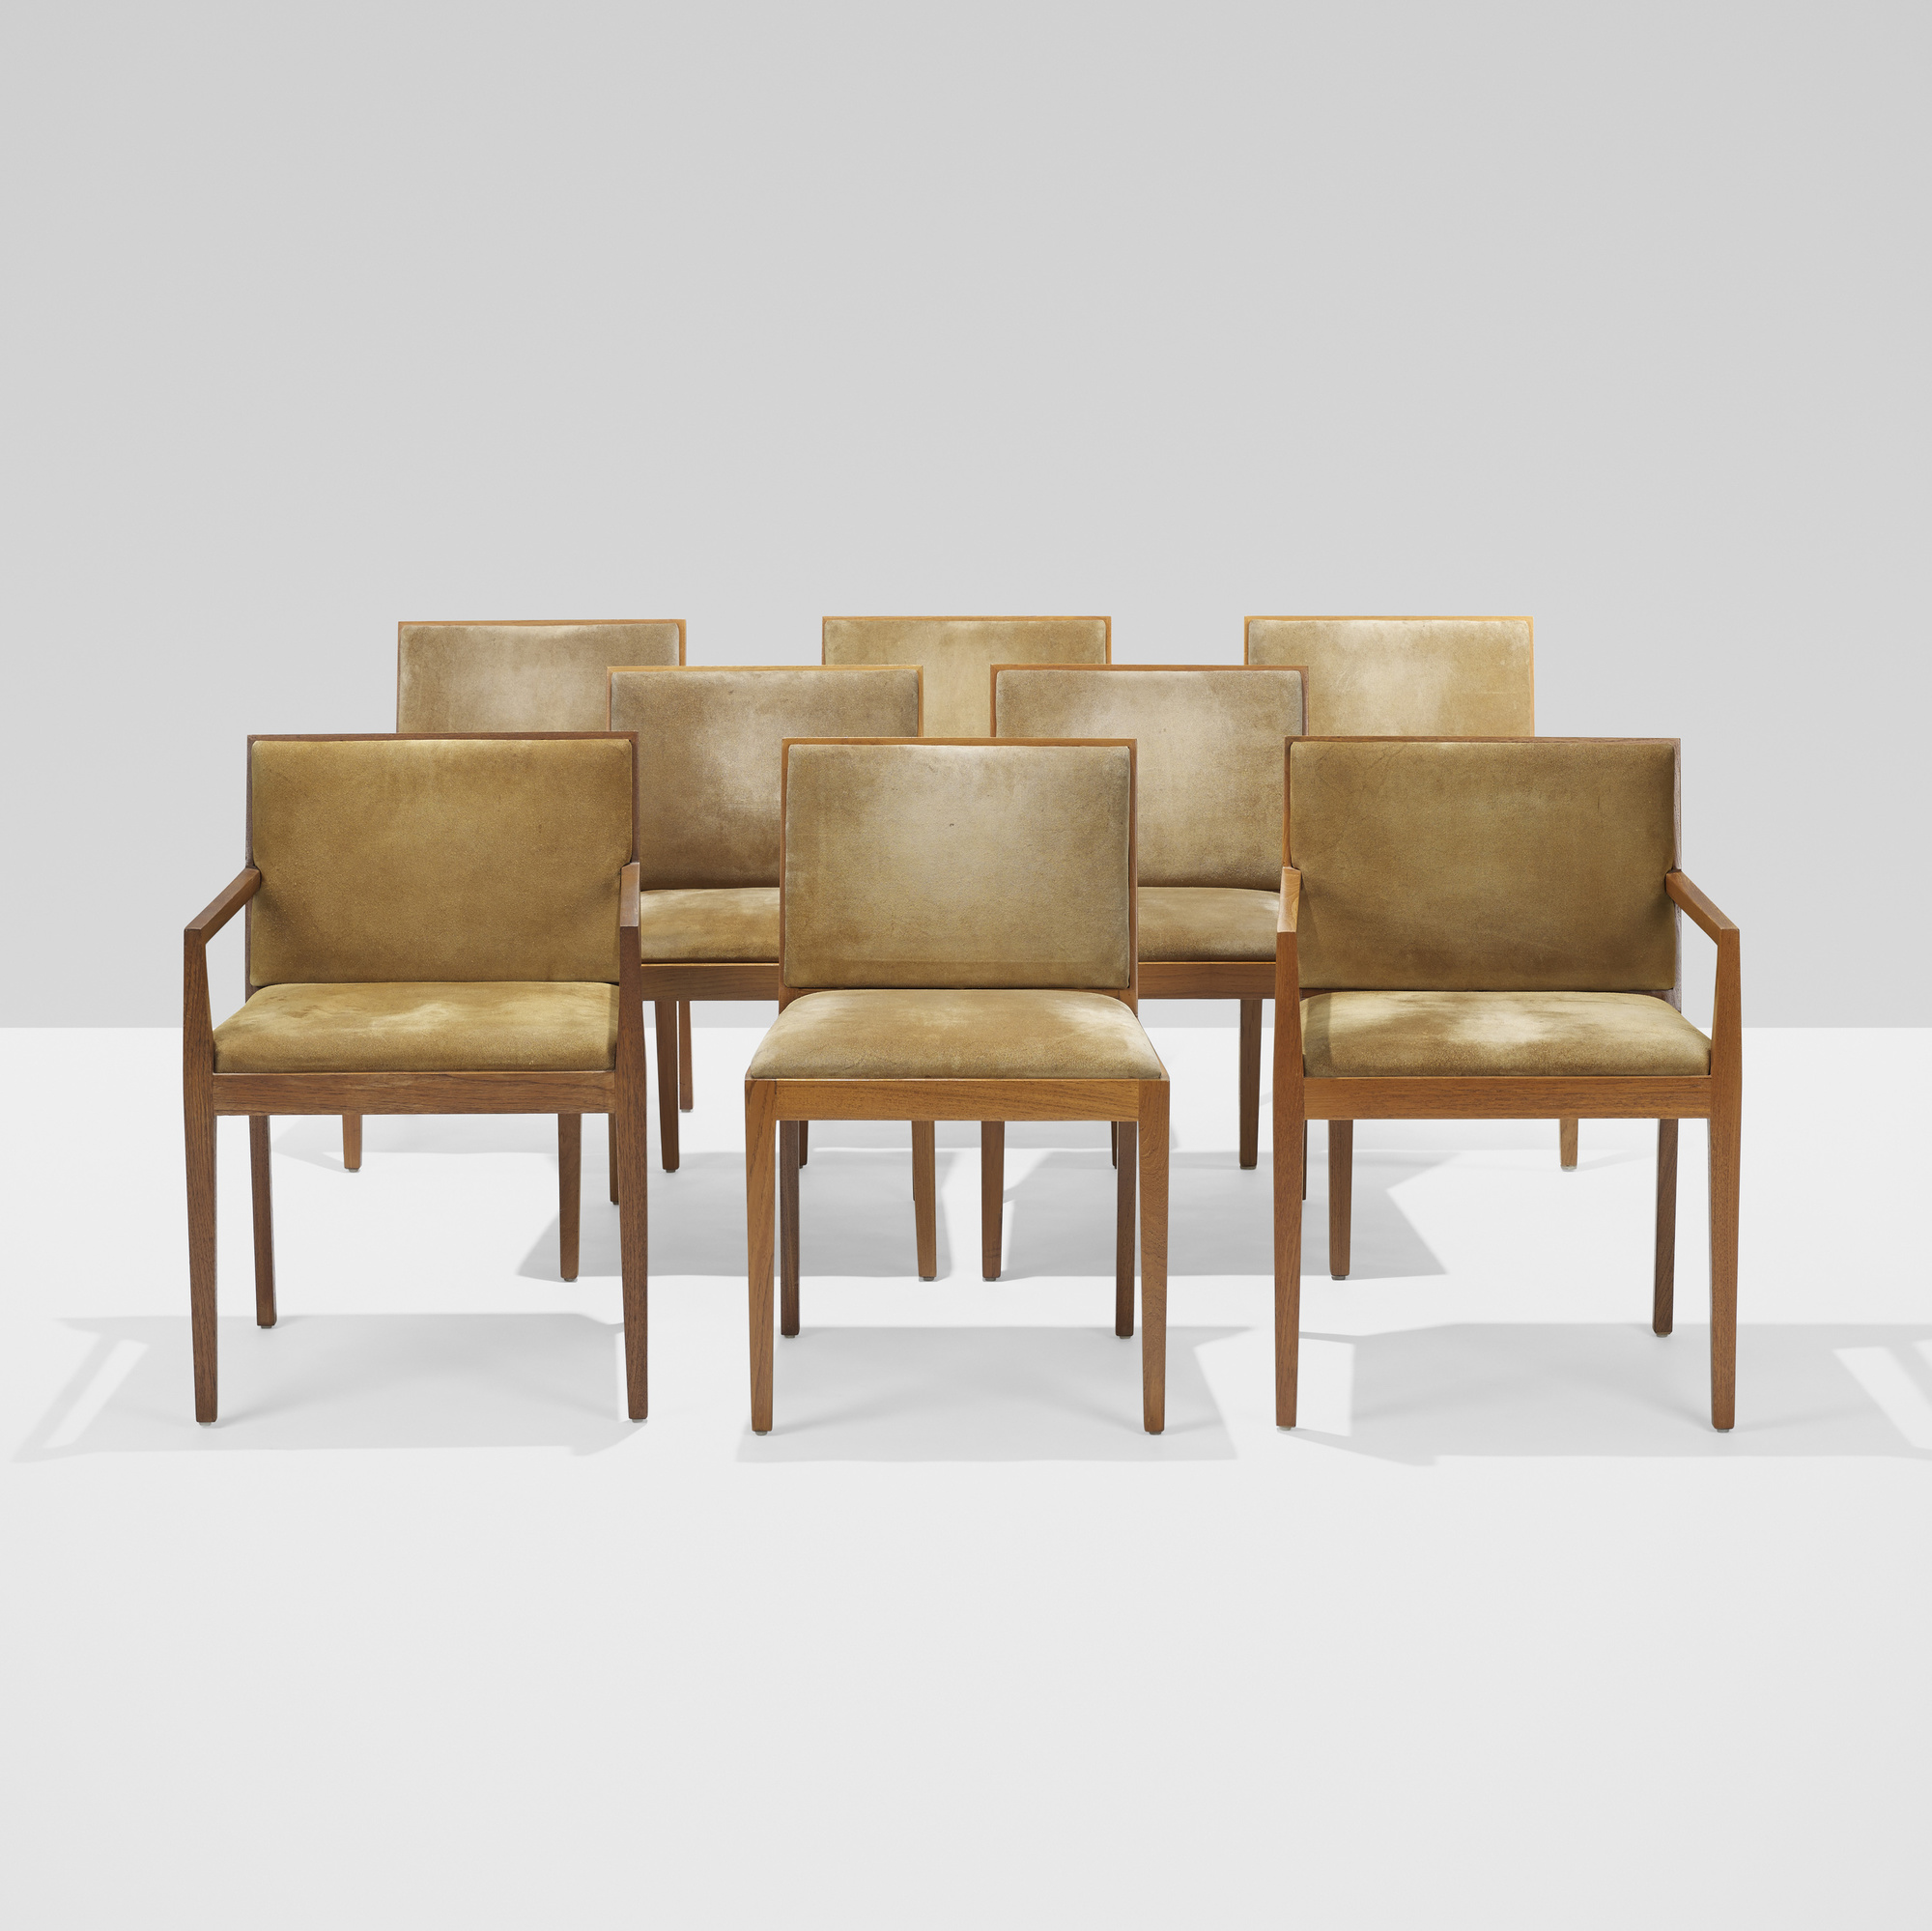 154: Ludwig Mies van der Rohe / set of eight dining chairs from 860 Lake Shore Drive, Chicago (1 of 6)